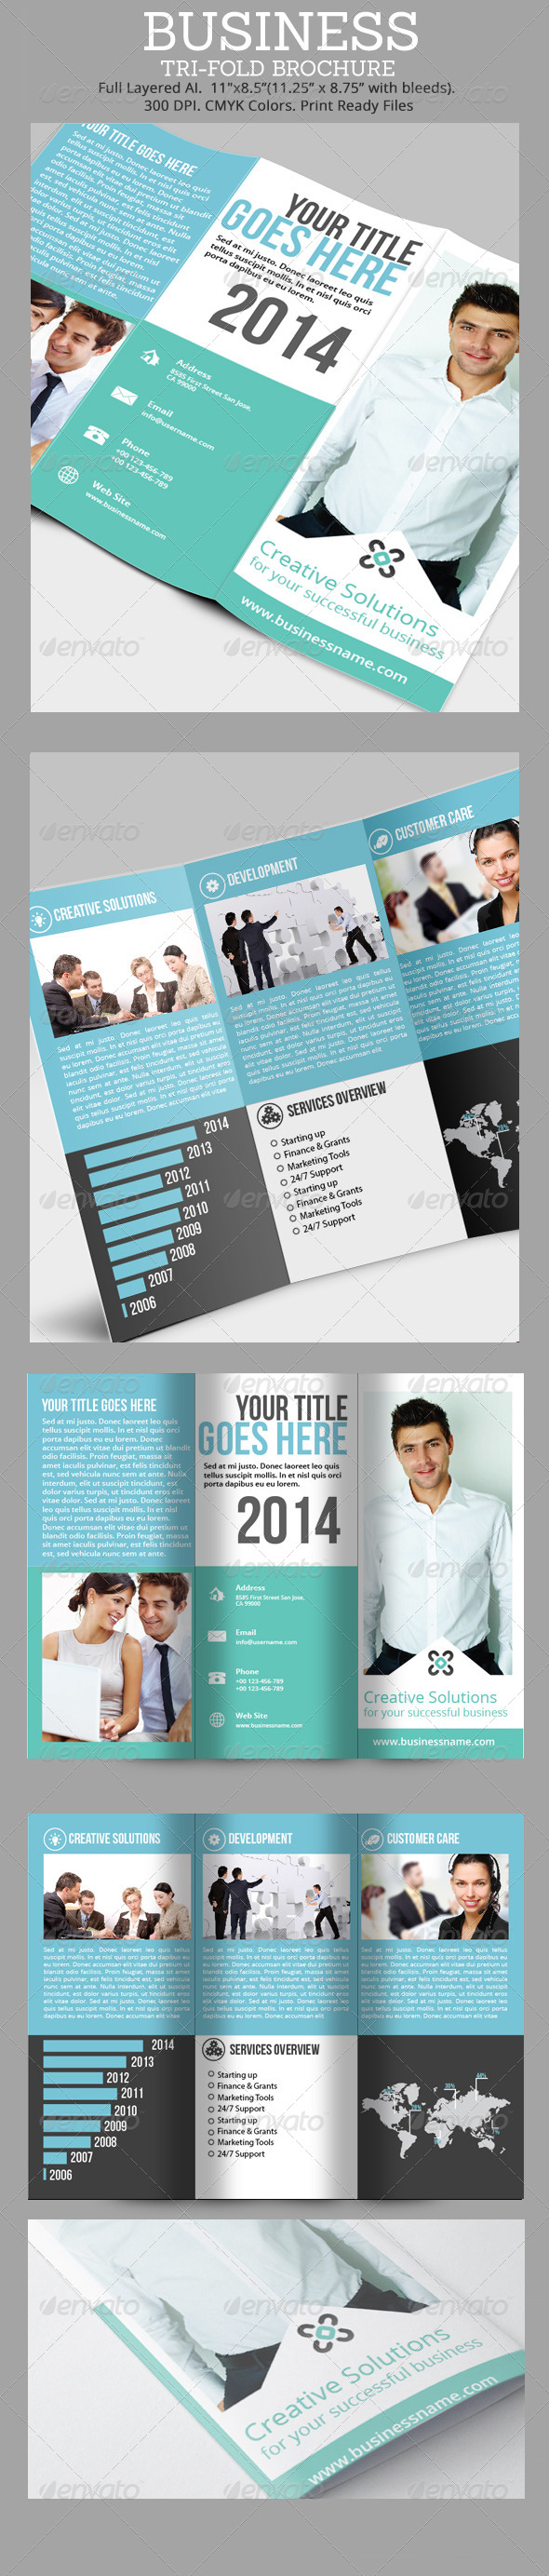 GraphicRiver Simple Business Tri-Fold Brochure 6913413